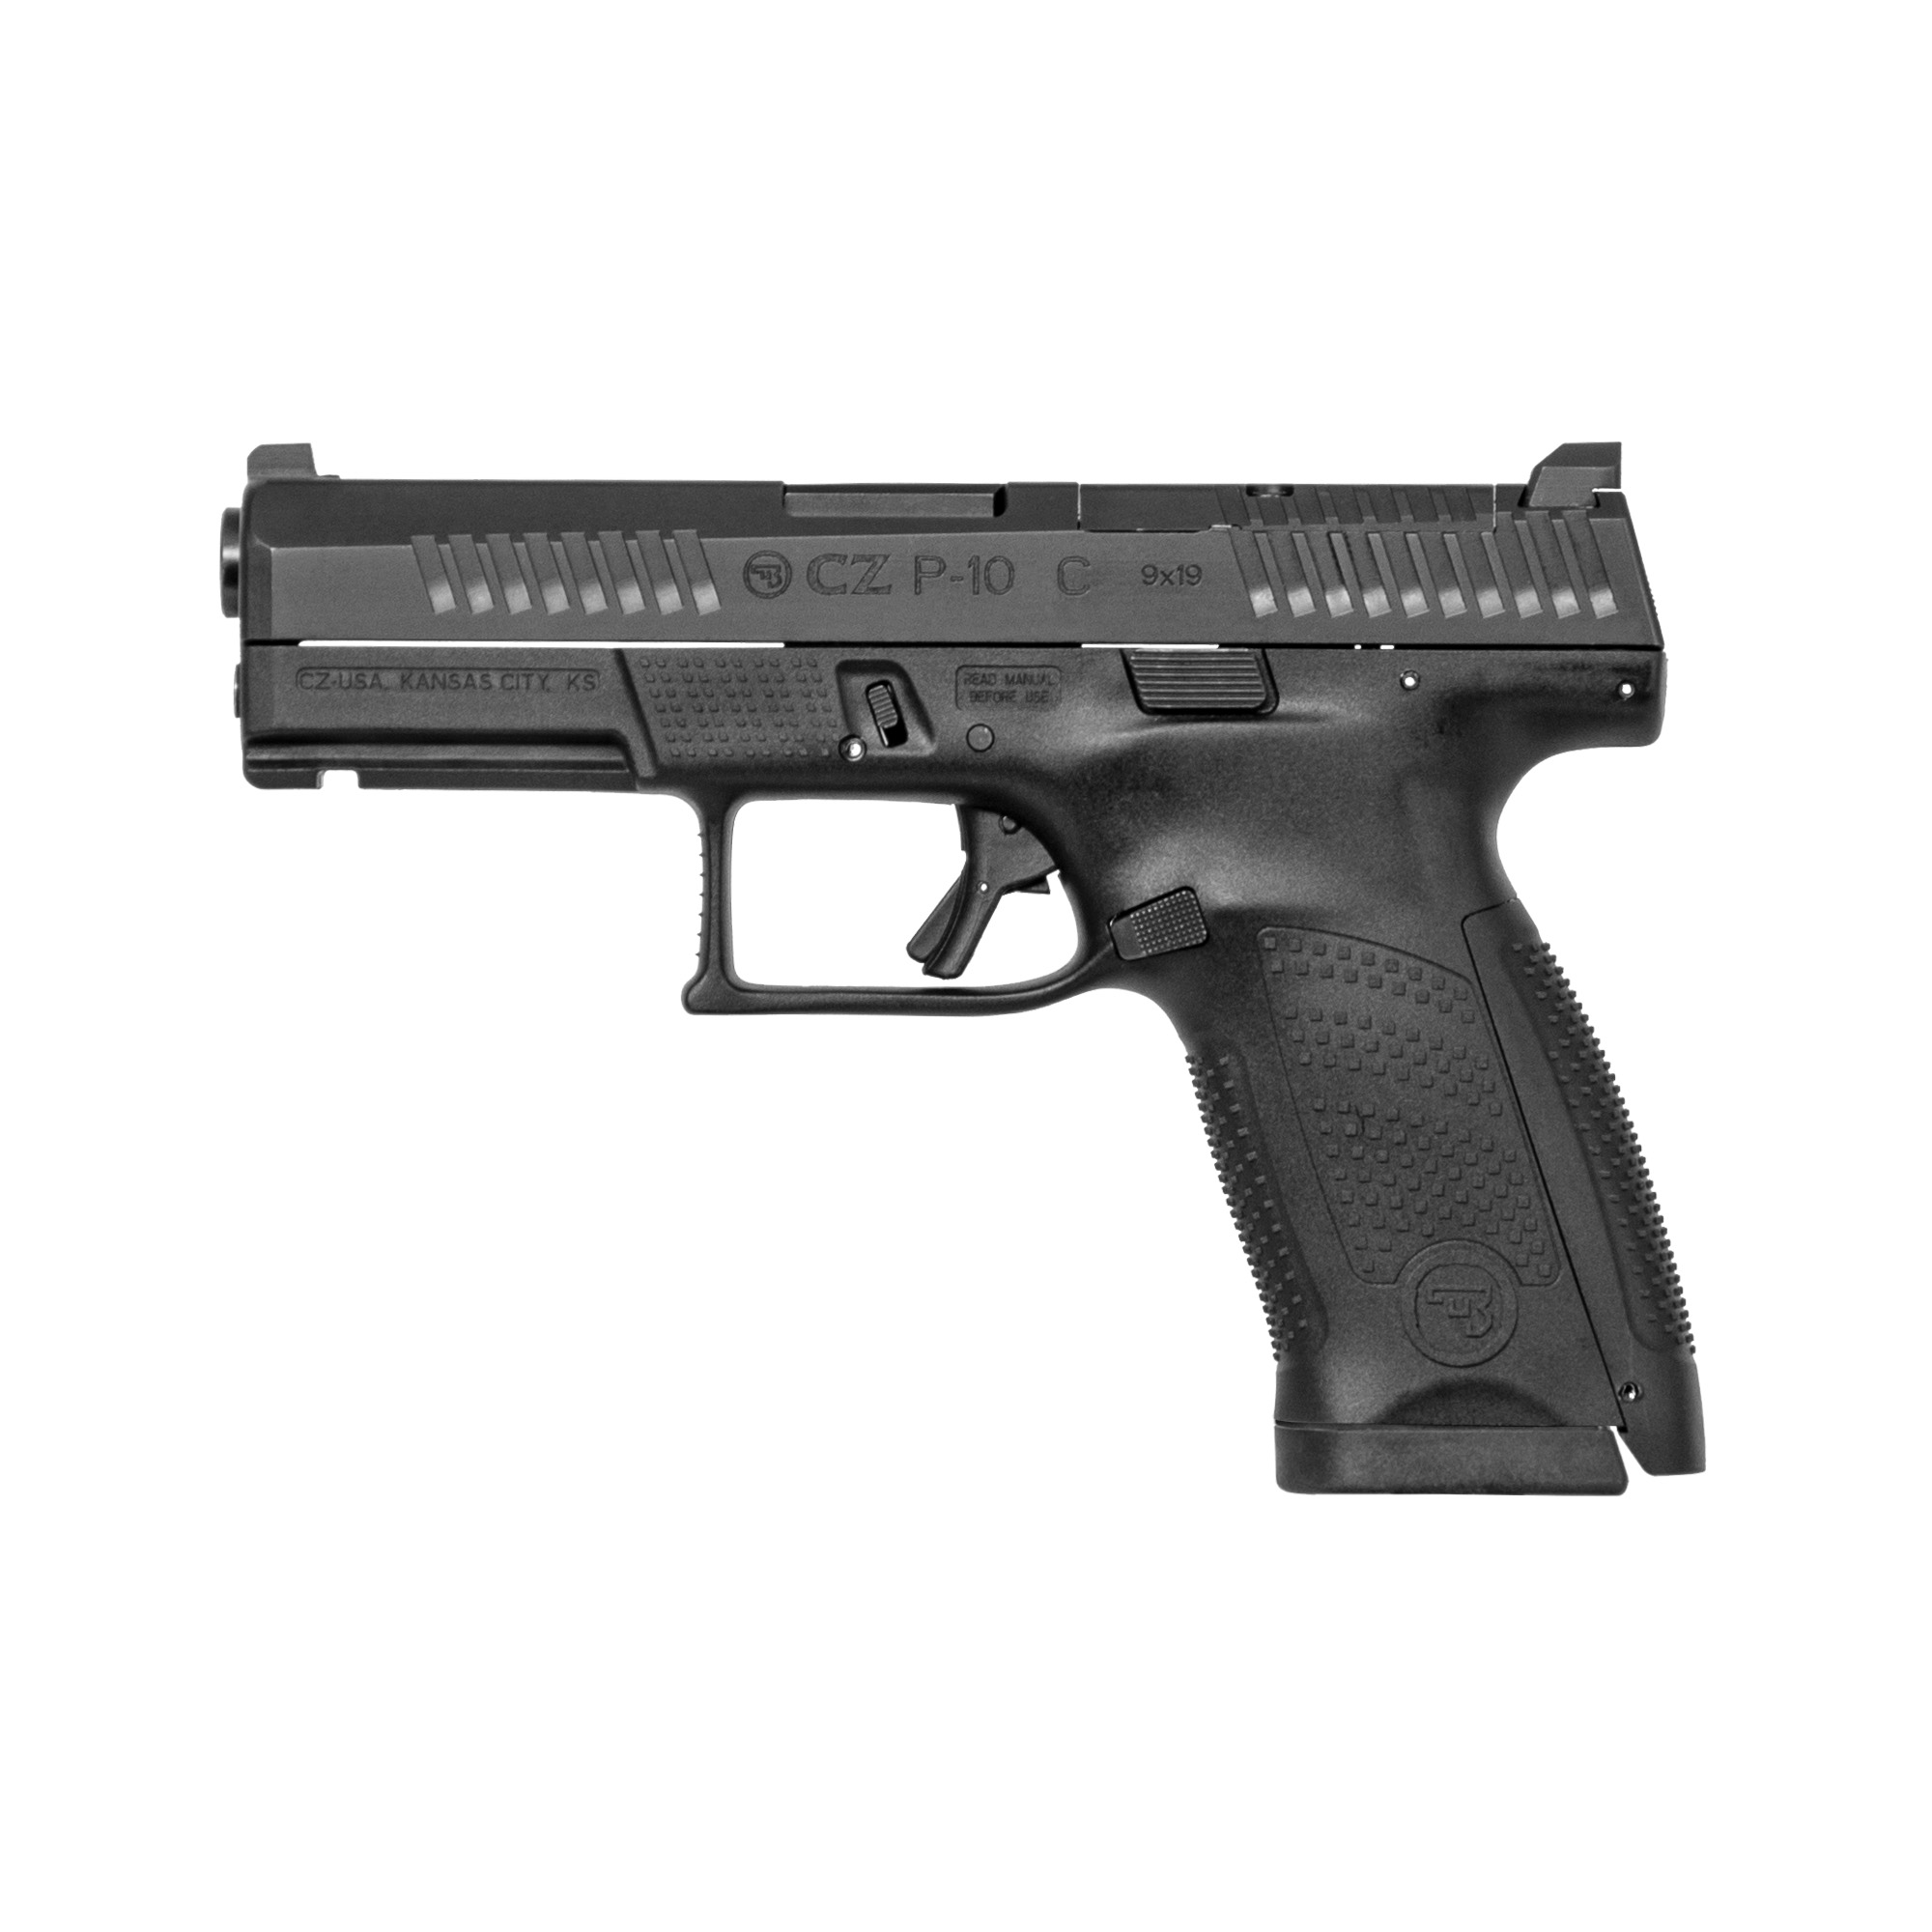 """With CZ reliability"""" engineered ergonomics and a bevy of features both familiar and new"""" the P-10 is the complete package. The CZ grip angle"""" helps the P-10 avoids that 'brick-in-the-hand' feeling that has plagued many in the striker-fired genre"""" allowing it to point naturally. A mild palm swell"""" deep beavertail and three interchangeable backstraps make the P-10 fit a wide variety of hands. The P-10's trigger is designed to minimize creep and stacking"""" and after initial break-in averages a clean 4.5-5 lb. pull and rebounds with a short"""" positive reset - meaning single shots can be meticulously placed while follow-ups are effortless. Built to withstand the rigors of military use"""" its fiber-reinforced polymer frame and hardy nitride finish are made for the daily grind. A generous trigger guard allows use with gloved hands while being undercut to allow as high a grip as possible"""" and a set of metal tactical sights allow for one-handed manipulation of the slide on a belt. Like all CZ pistols"""" the P-10 is built with CZ's legendary cold hammer forged barrel. The 'C' in the name indicates that it is compact in both frame and slide size"""" and magazines are of the same family as the hammer-fired P-07"""" meaning the P-10 C holds 15+1 in 9mm in a flush-fitting mag with extended bases allowing 17+1. Take-down of the P-10 will be familiar to most fans of striker-fired guns"""" and even more pleasing will be holster compatibility with some of the most common guns on the market."""